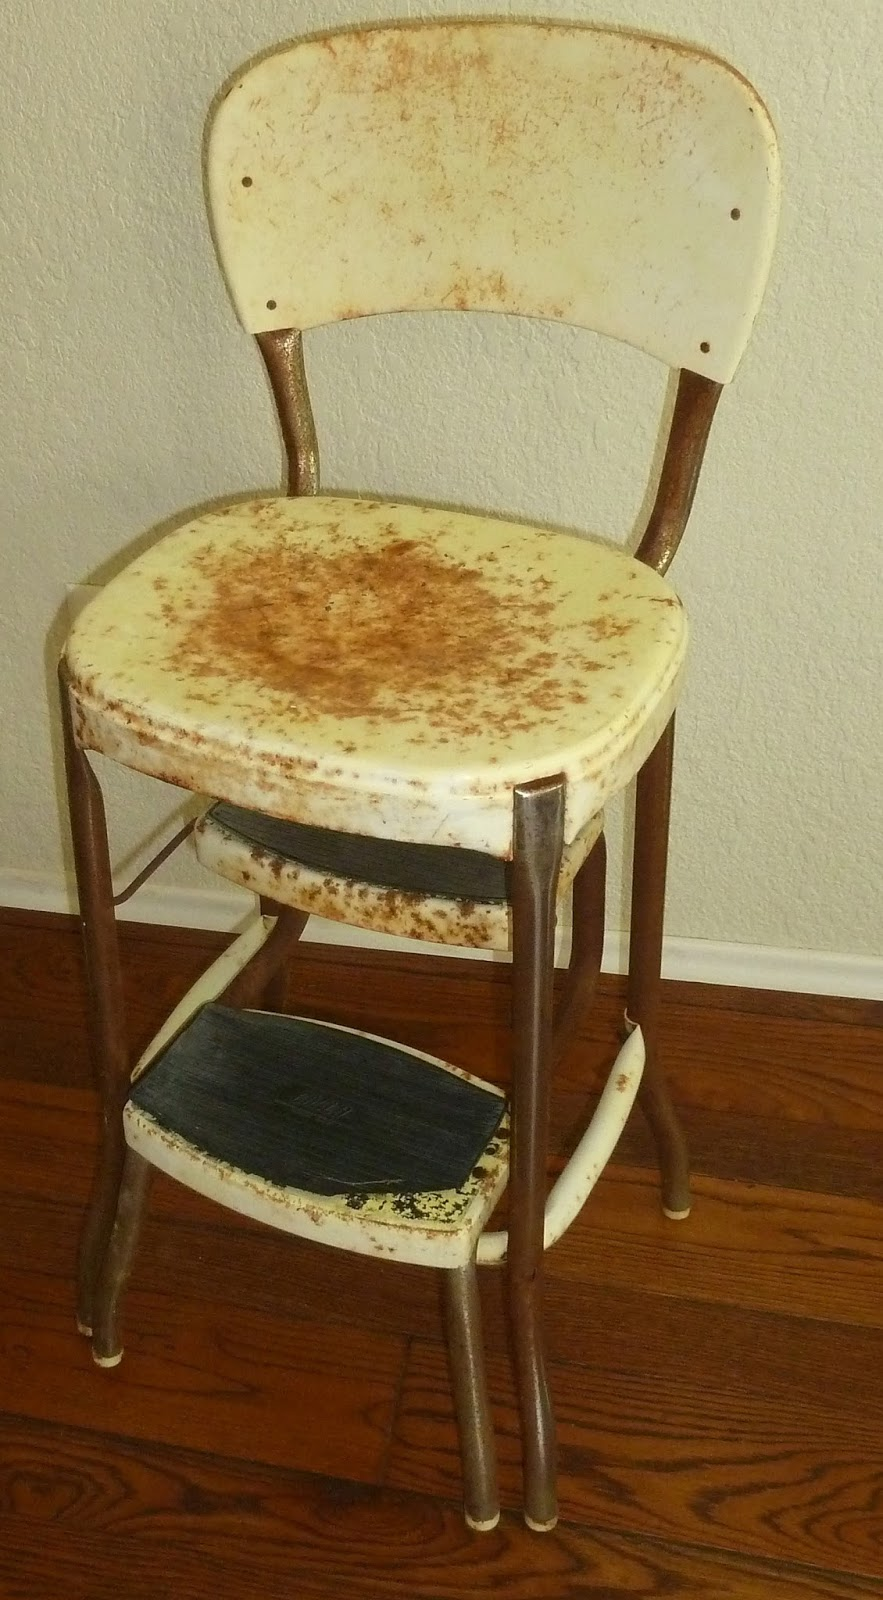 Observations Vintage Step Stool Chair